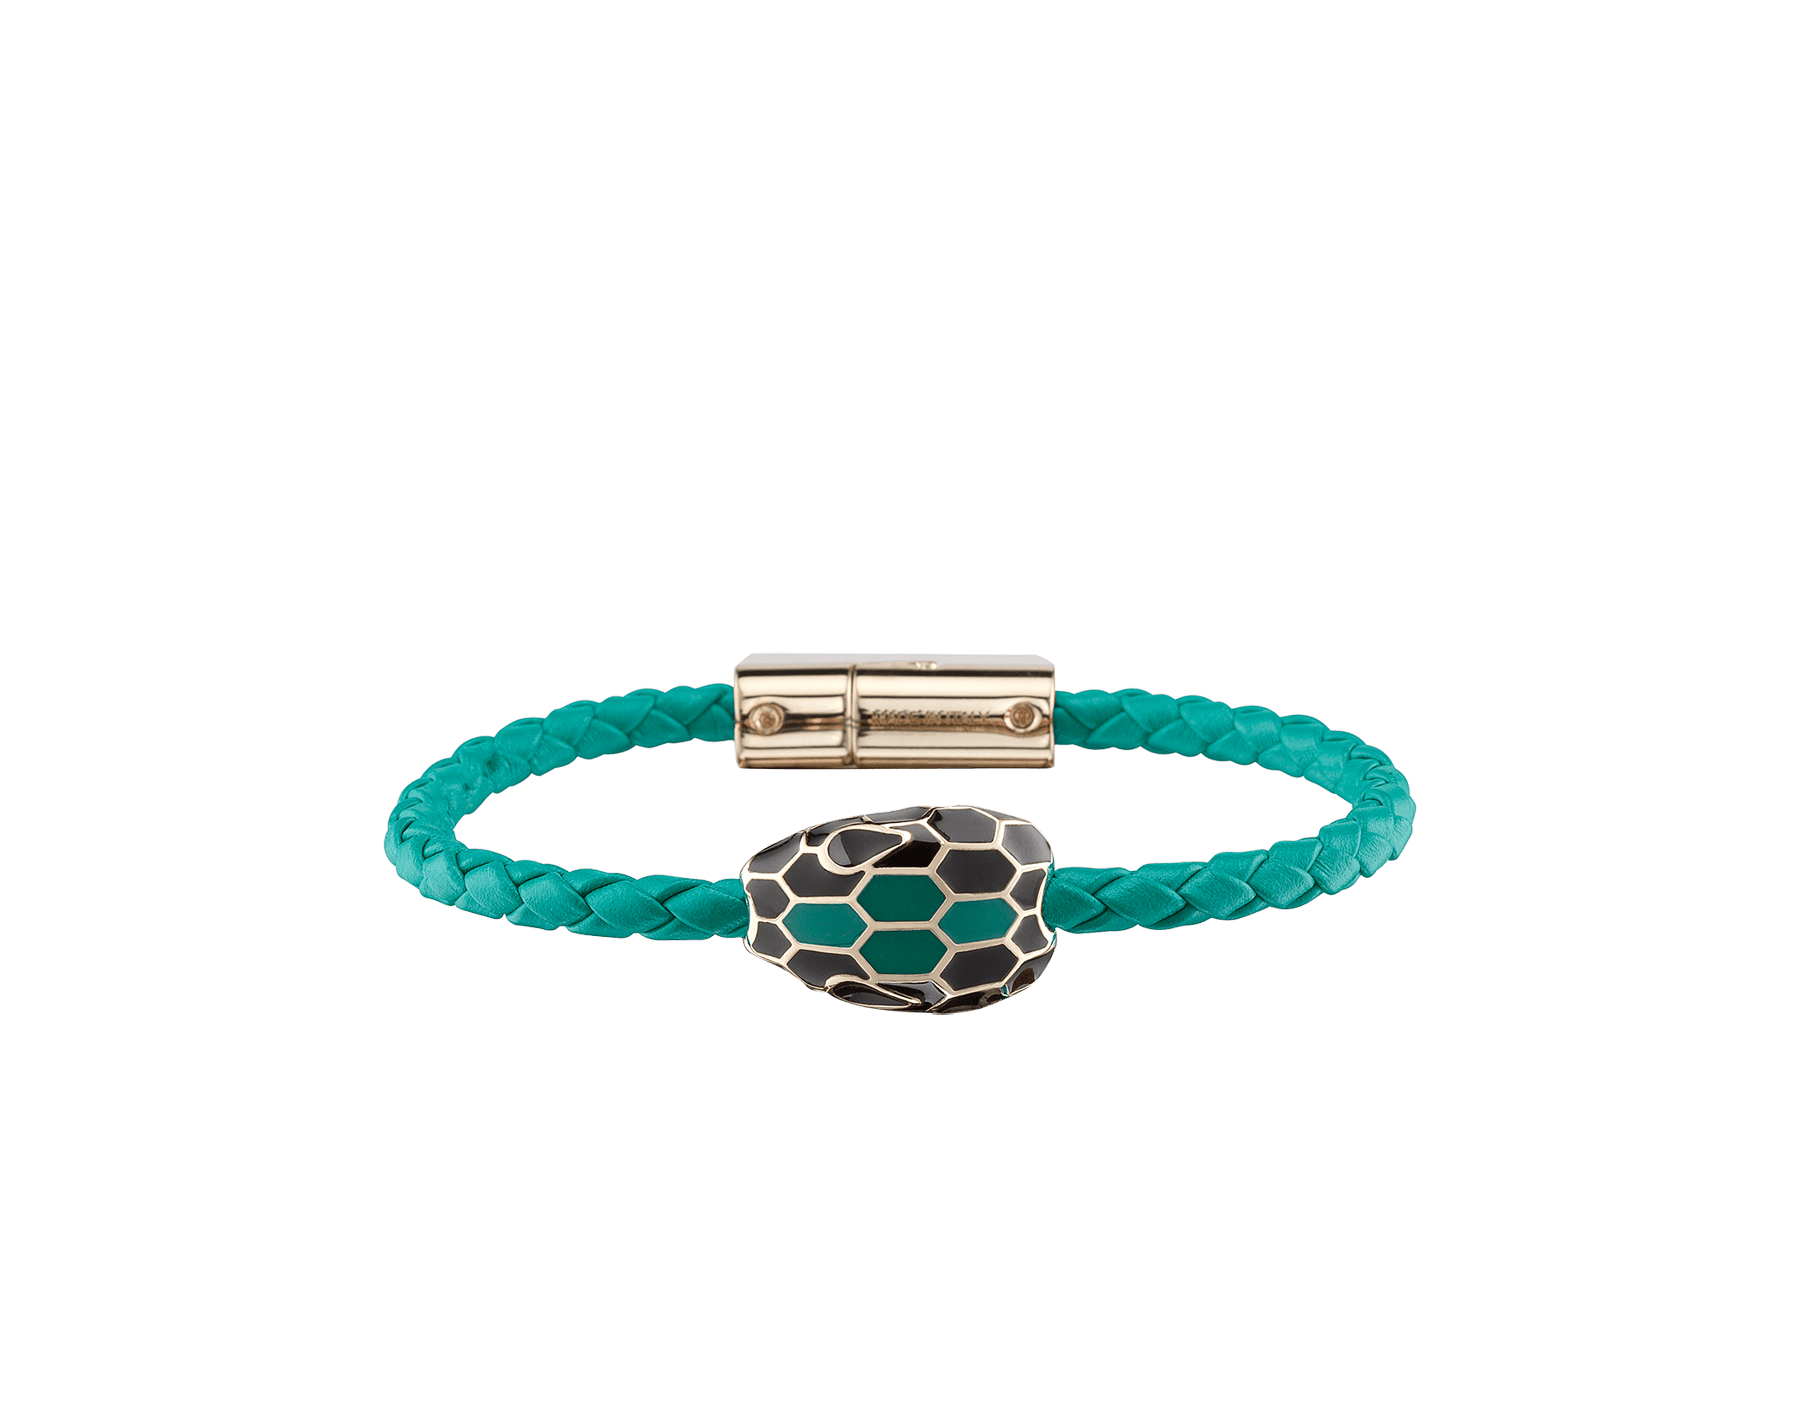 Serpenti Forever braid bracelet in tropical tourquoise woven calf leather with an iconic snakehead décor in black and tropical tourquoise enamel. SerpBraid-WCL-TT image 1